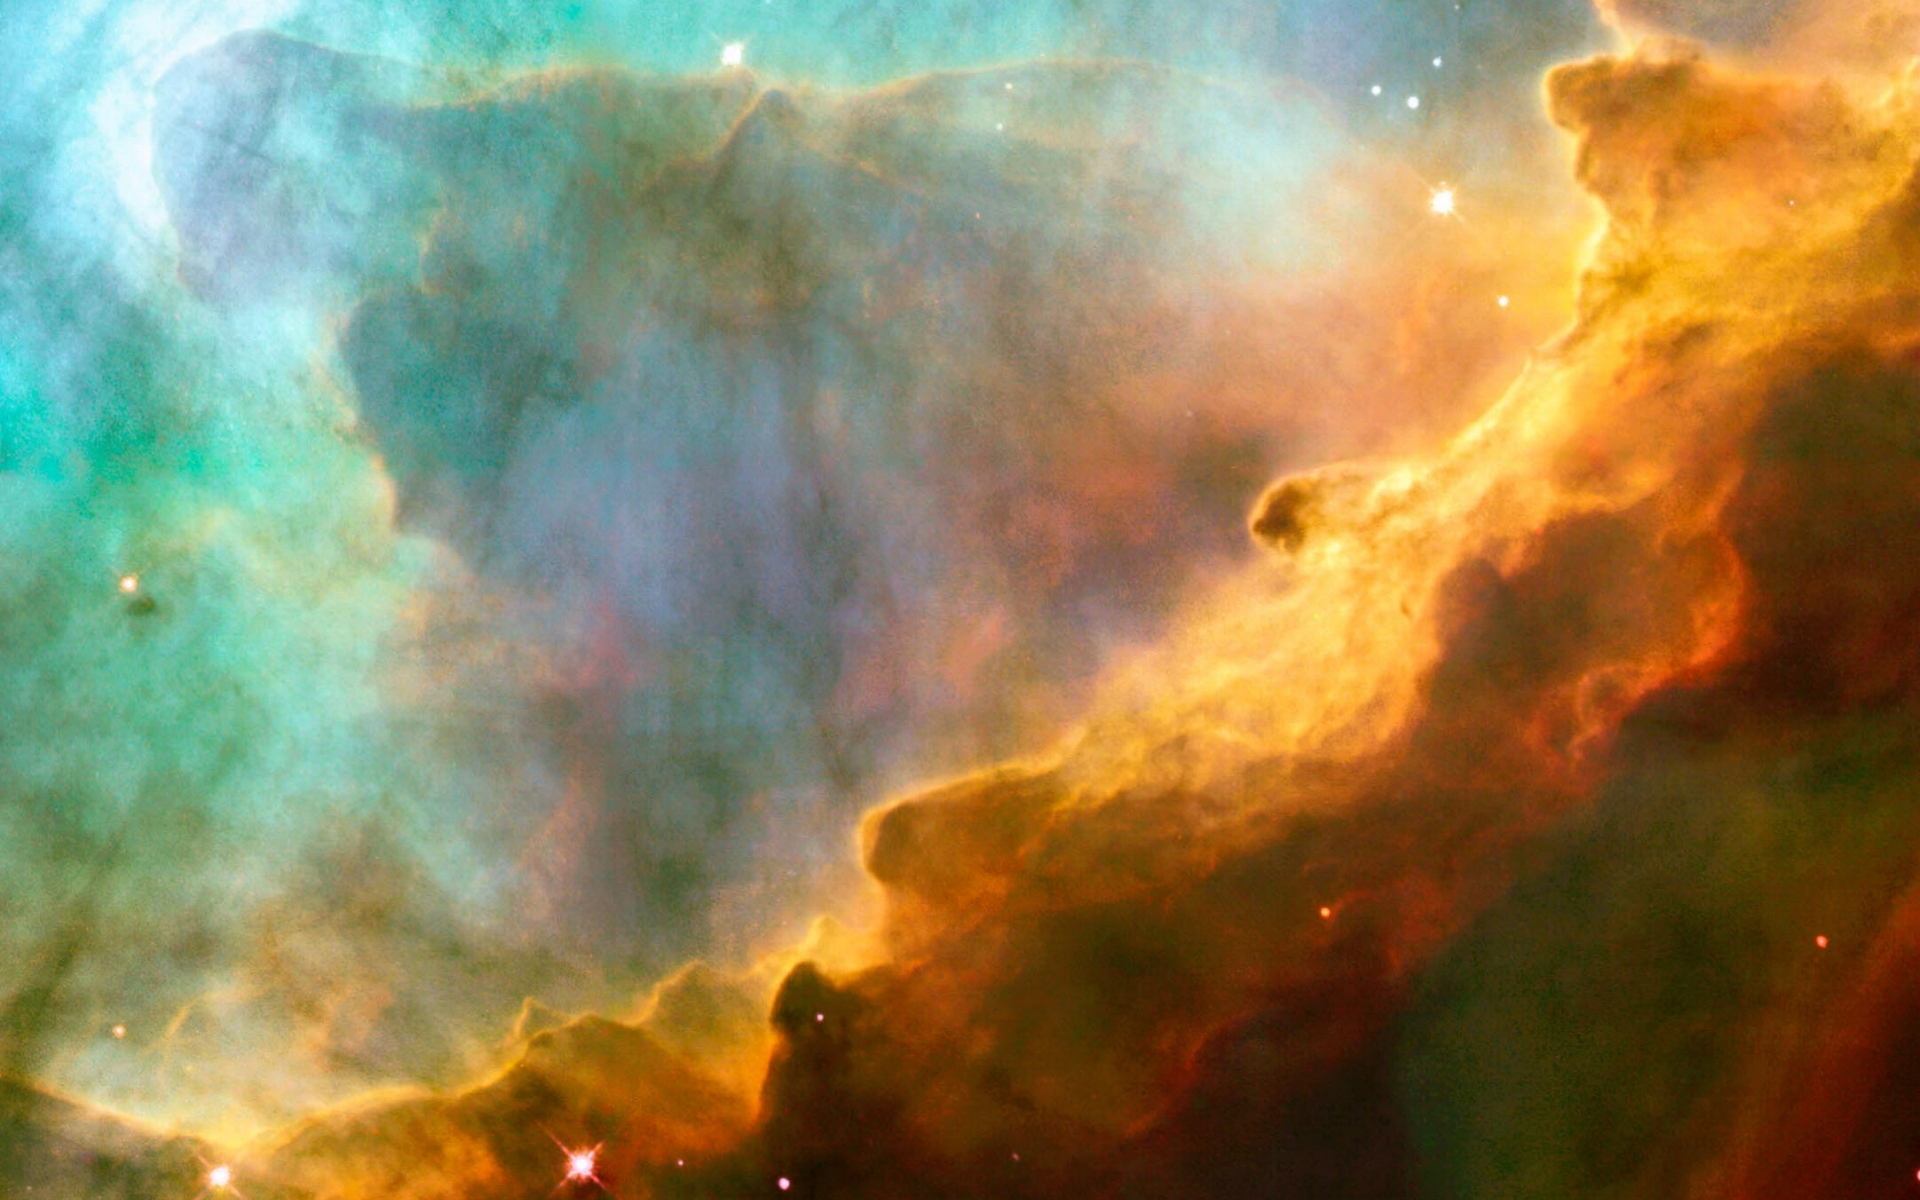 Simple Wallpaper High Resolution Space - 170302main_image_feature_ys_768_full  Pictures_629793.jpg